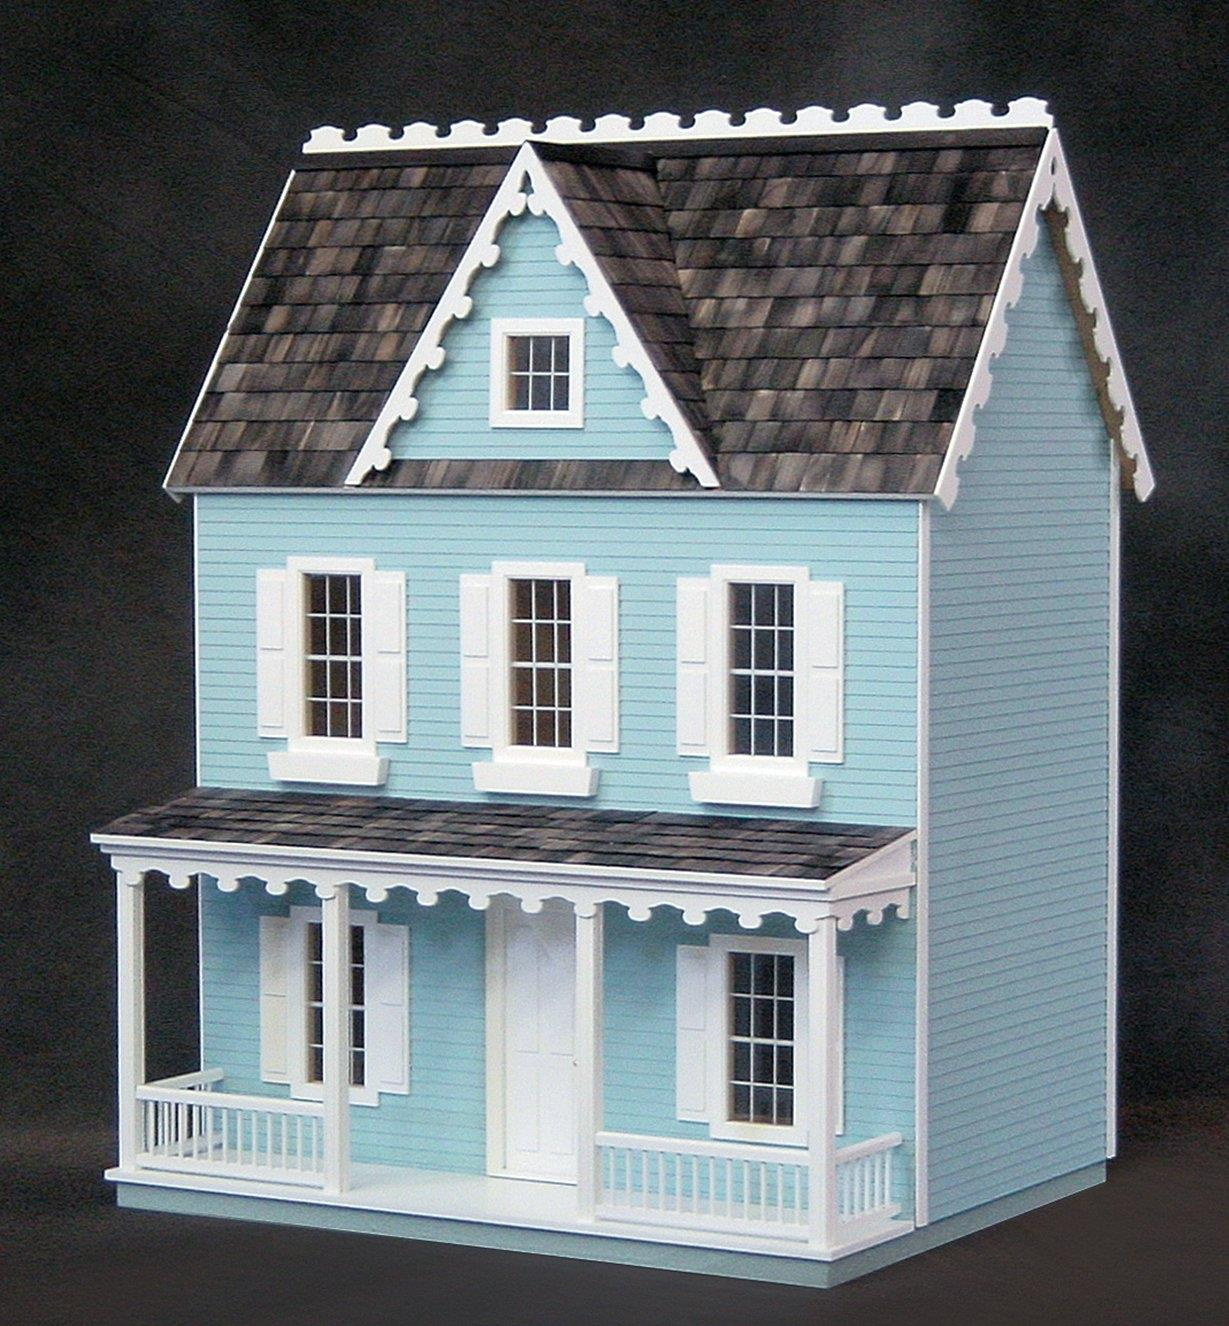 Front view of assembled and painted dollhouse